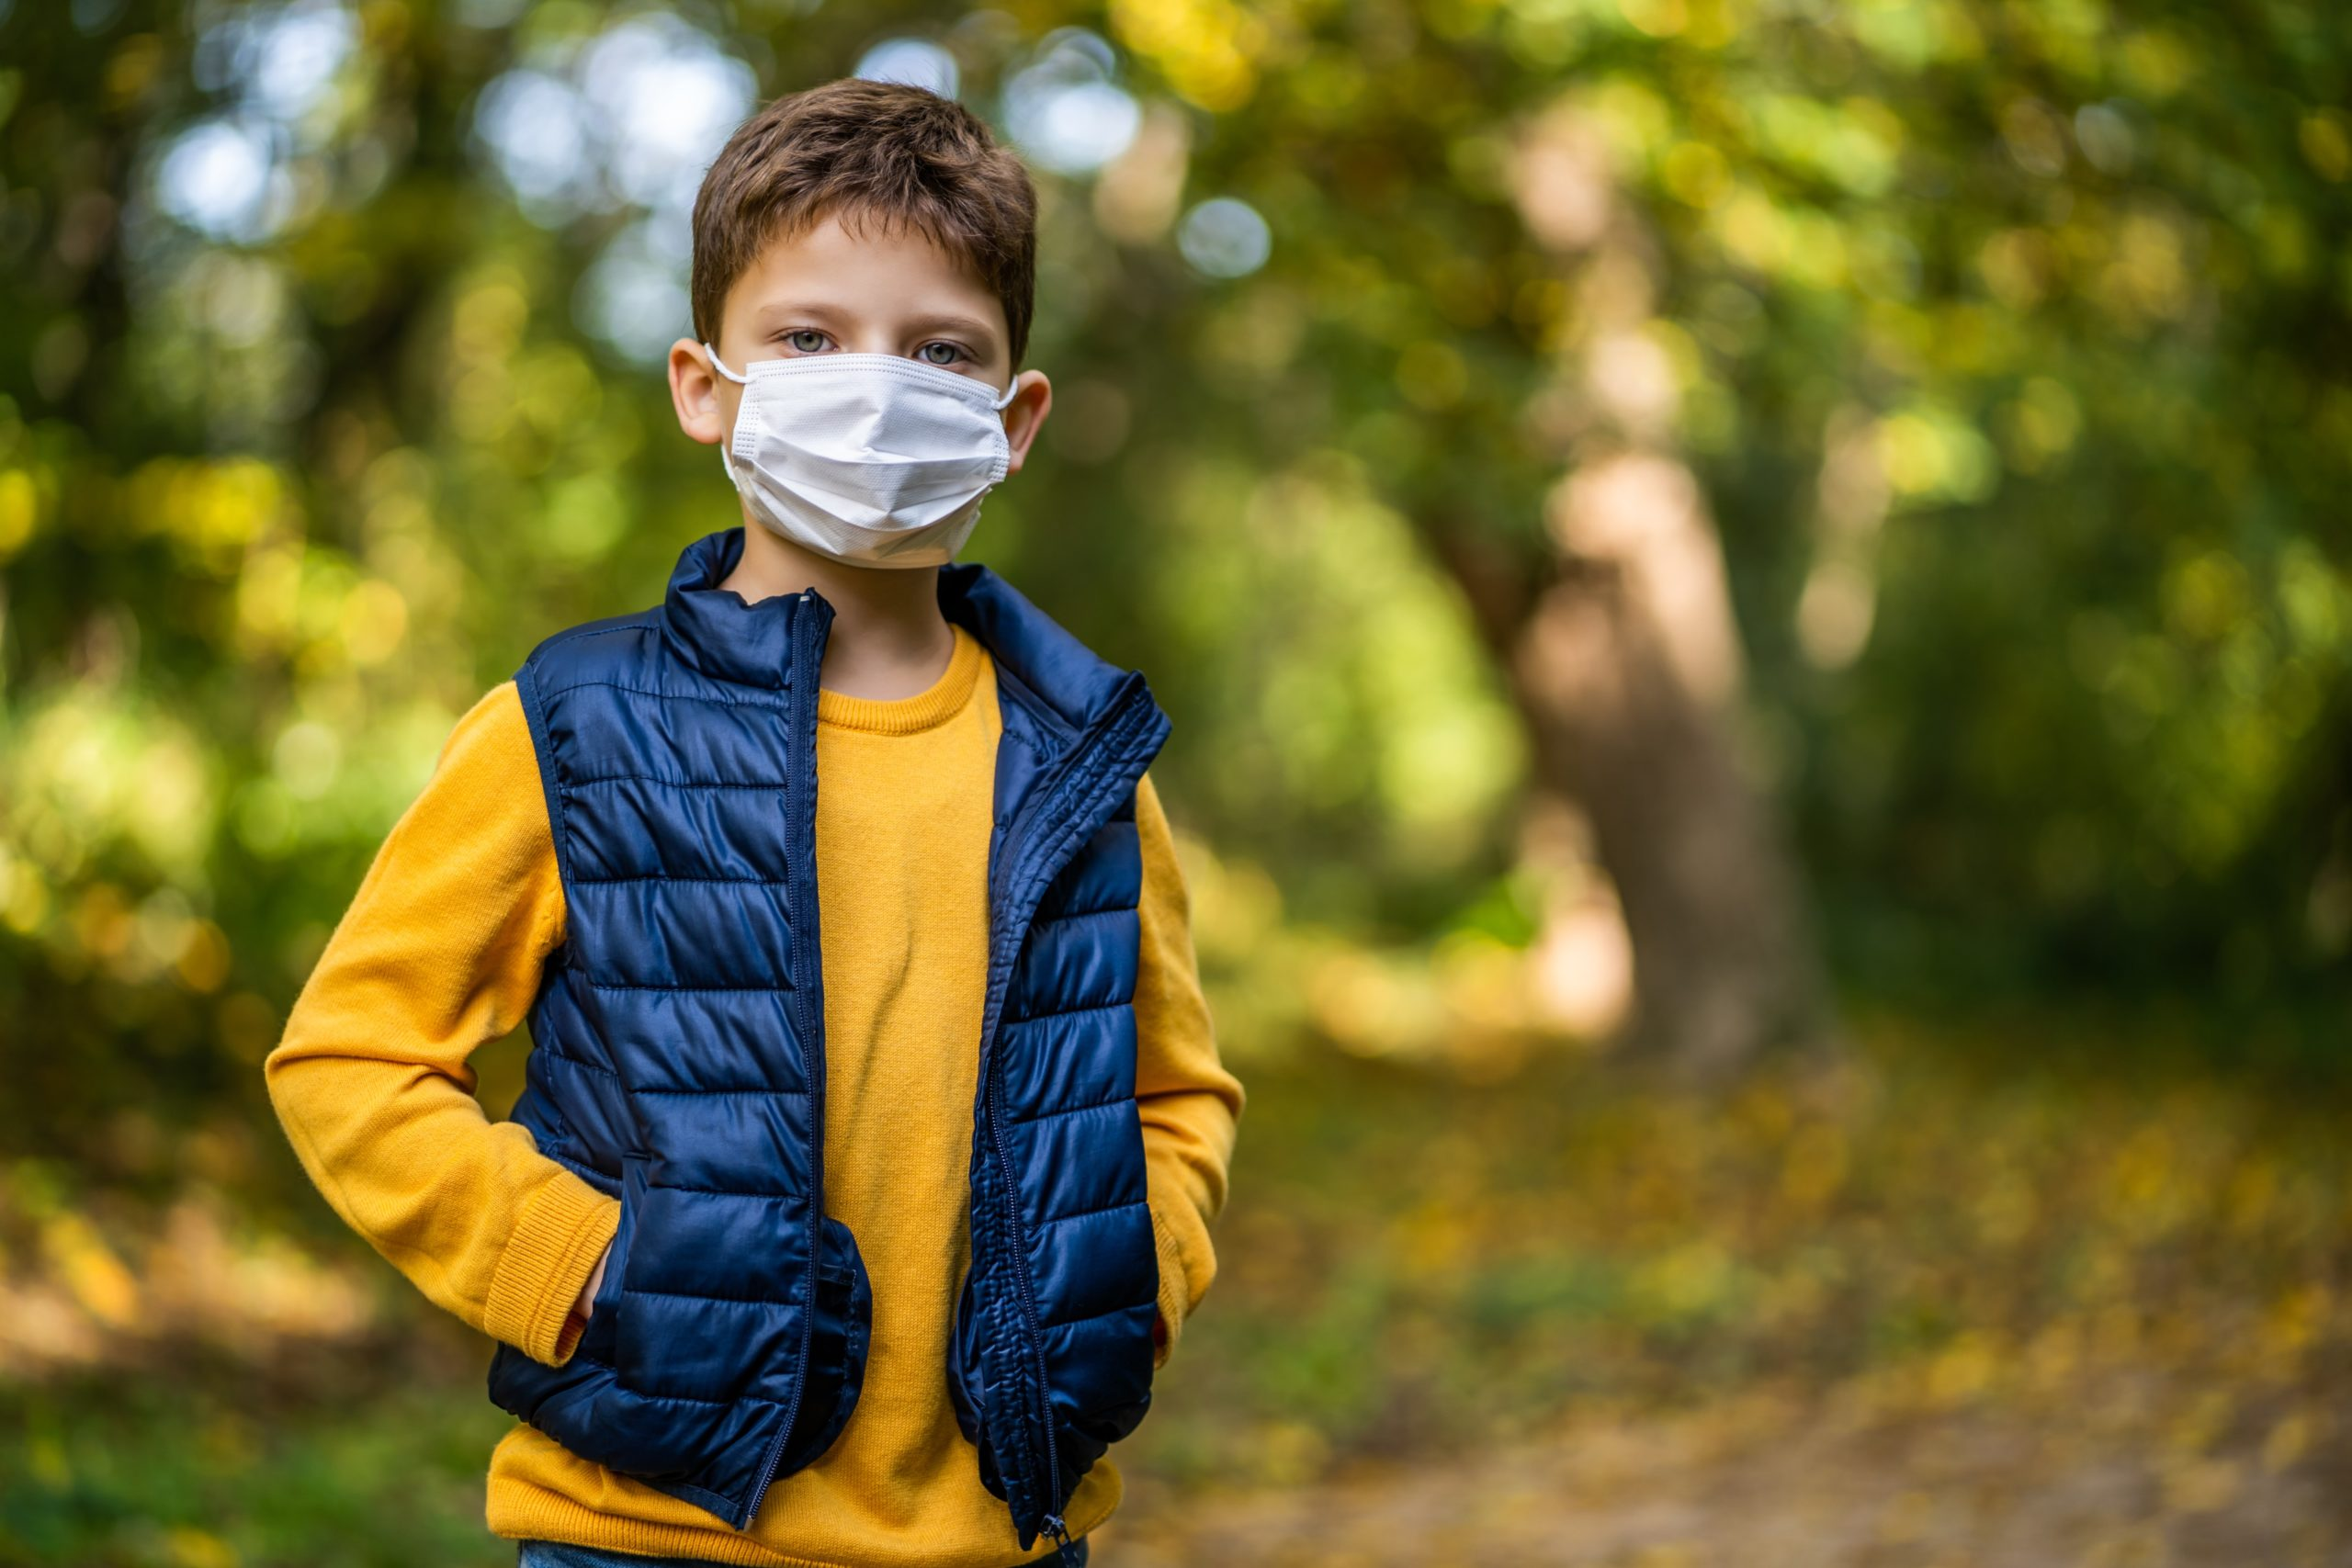 Boy wearing yellow shirt, navy blue vest, and face mask